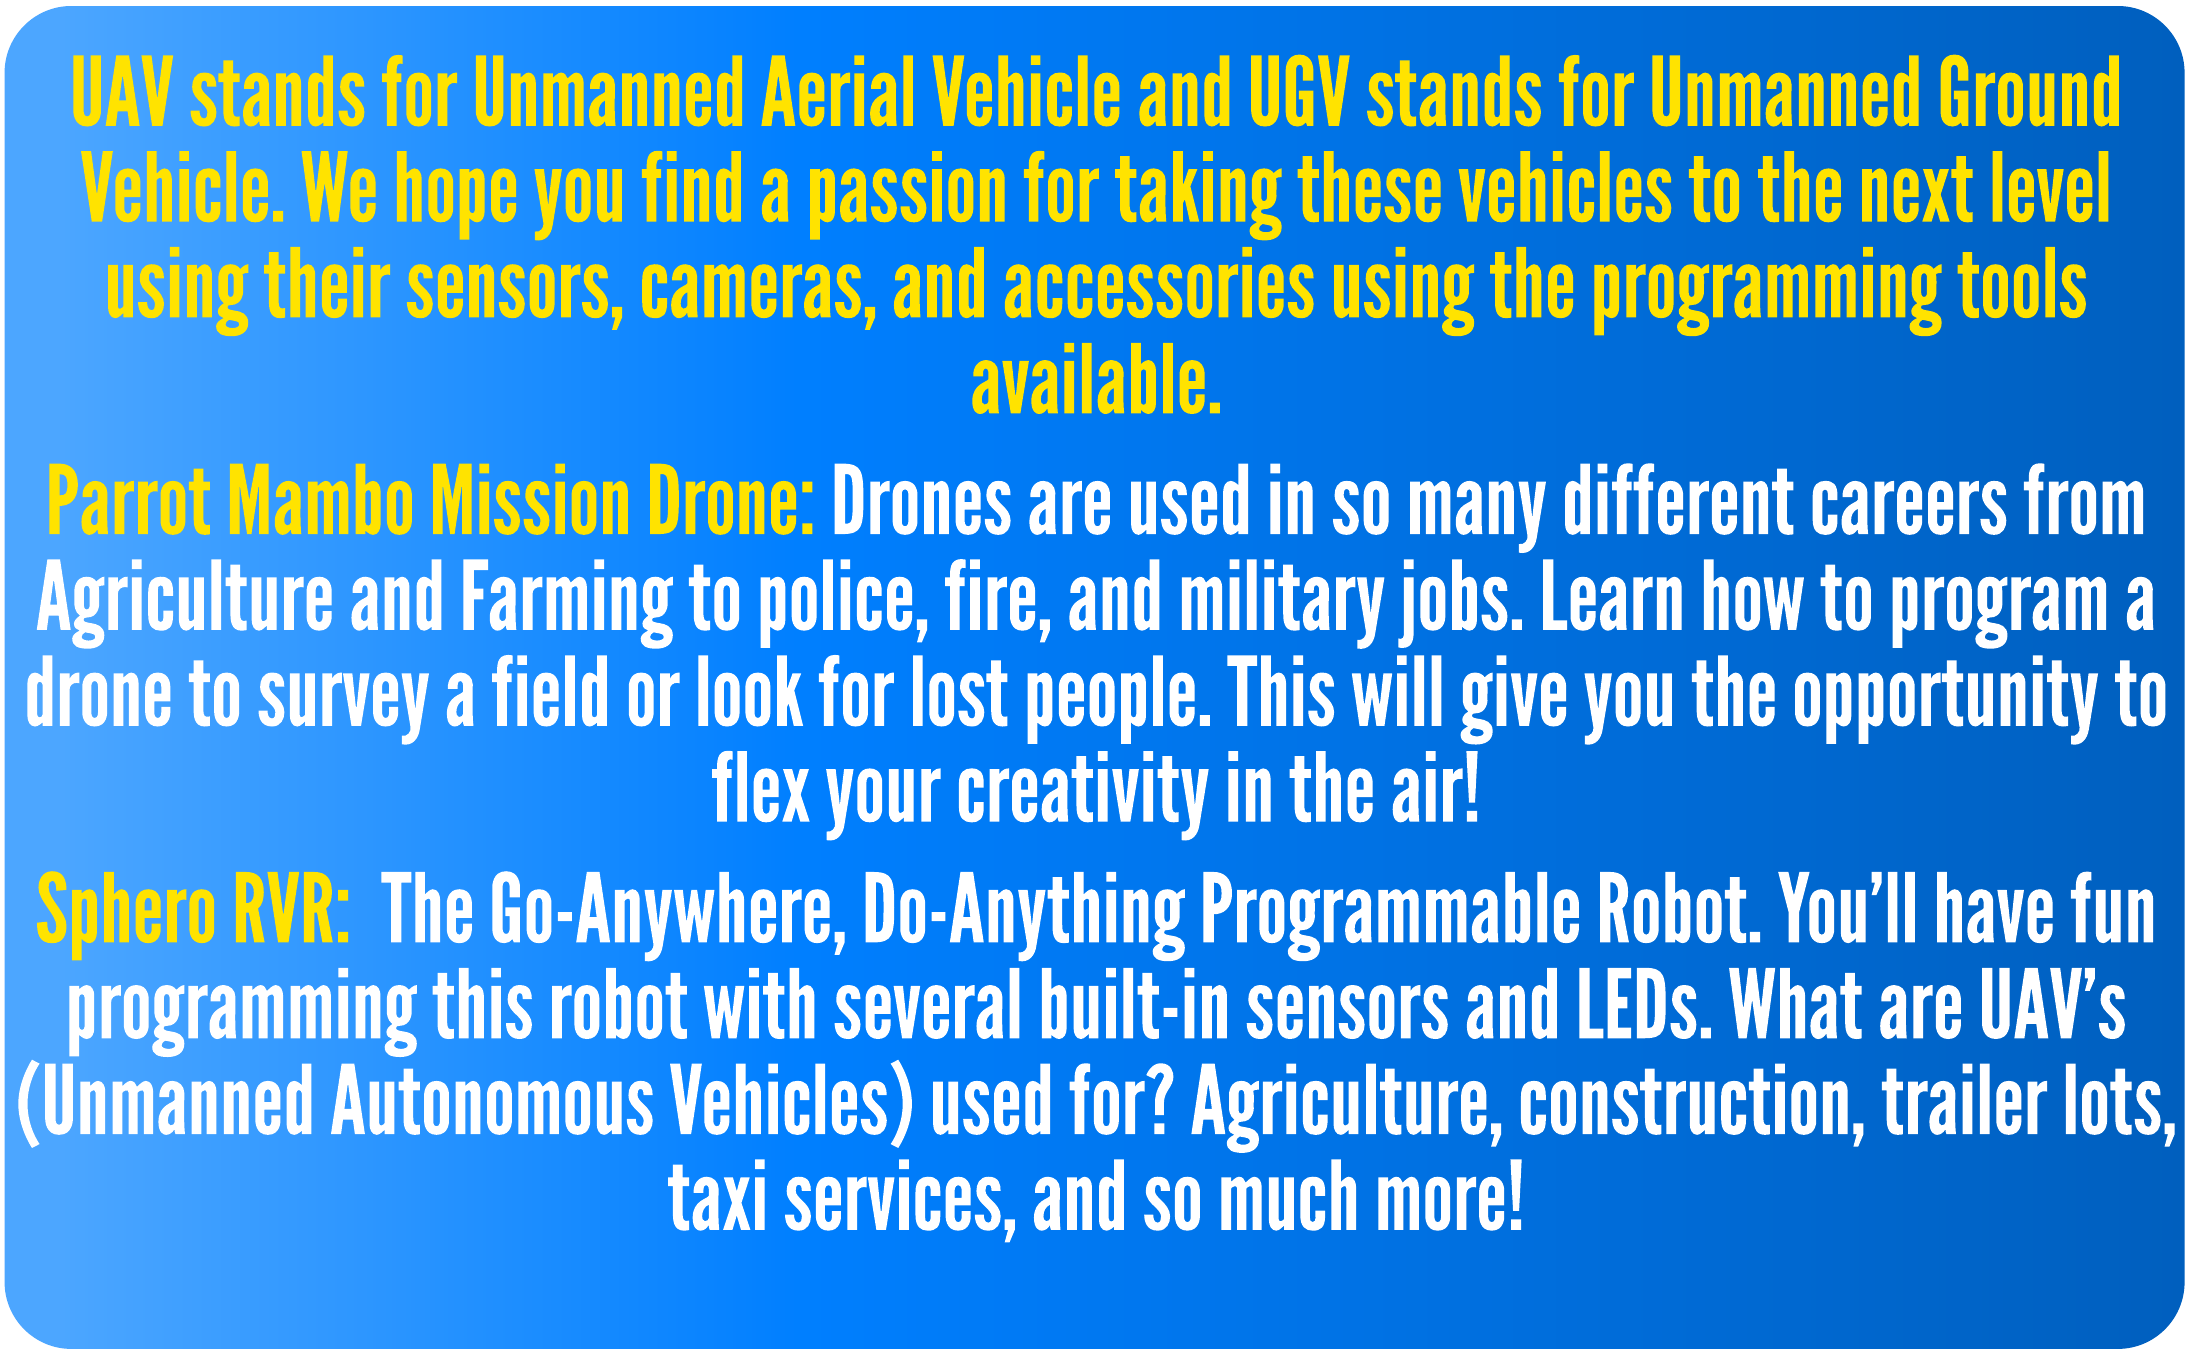 UAV stands for Unmanned Aerial Vehicle and UGV stands for Unmanned Ground Vehicle. We hope you find a passion for taking these vehicles to the next level using their sensors, cameras, and accessories using the programming tools available.  Parrot Mambo Mission Drone: Drones are used in so many different careers from Agriculture and Farming to police, fire, and military jobs. Learn how to program a drone to survey a field or look for lost people. This will give you the opportunity to flex your creativity in the air!  Sphero RVR: The Go-Anywhere, Do-Anything Programmable Robot. You'll have fun programming this robot with several built-in sensors and LEDs. What are UAV's (Unmanned Autonomous Vehicles) used for? Agriculture, construction, trailer lots, taxi services, and so much more!